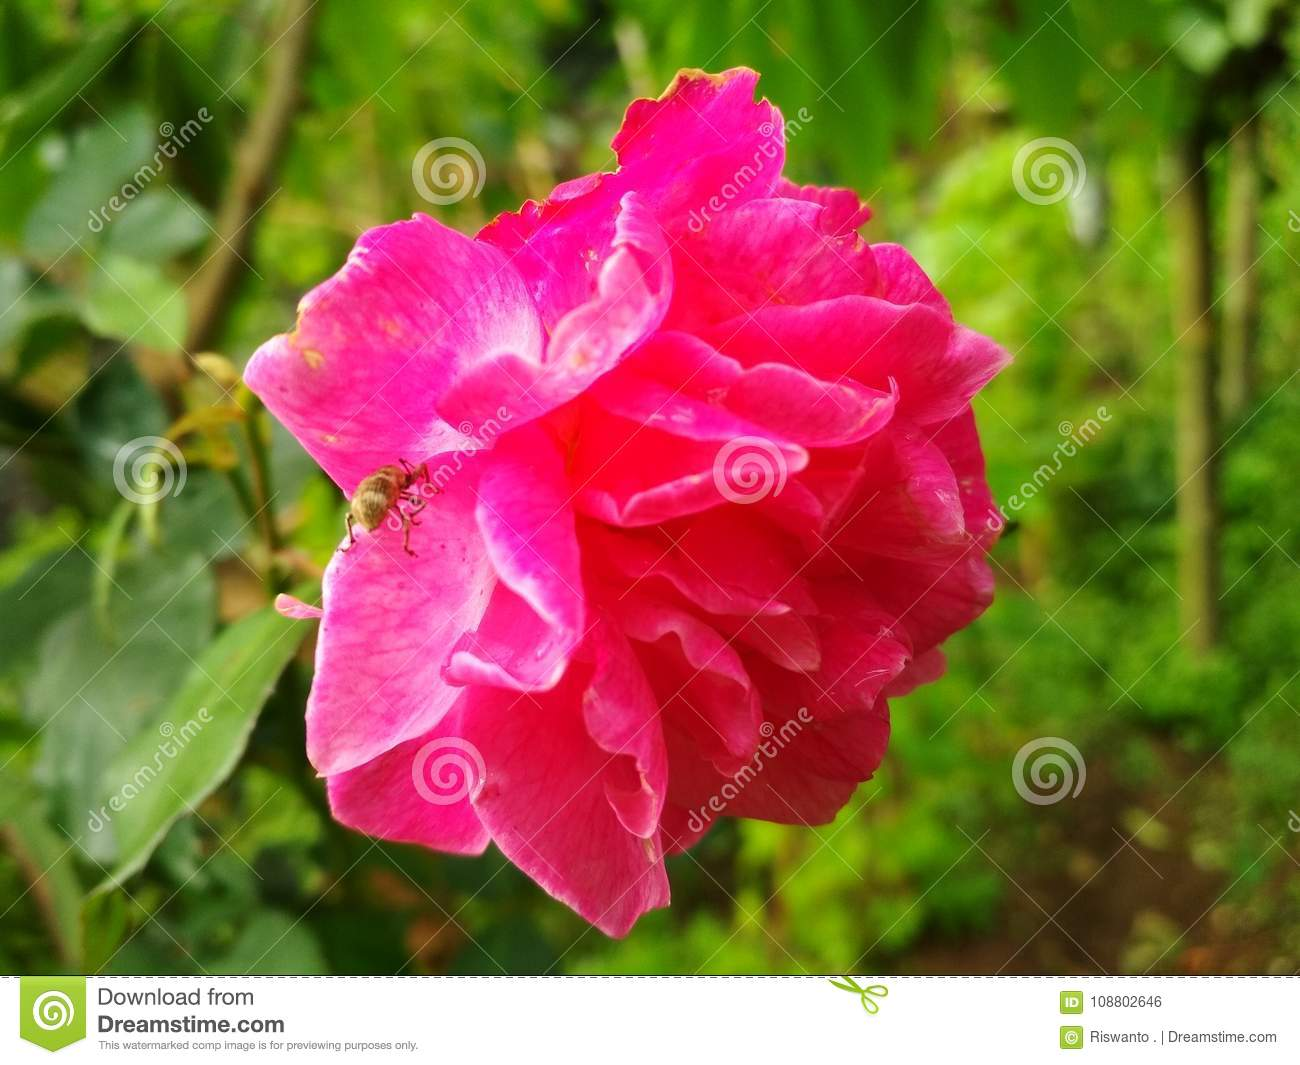 Red Roses Flowers Image Natural Stock Photo Image Of Roses